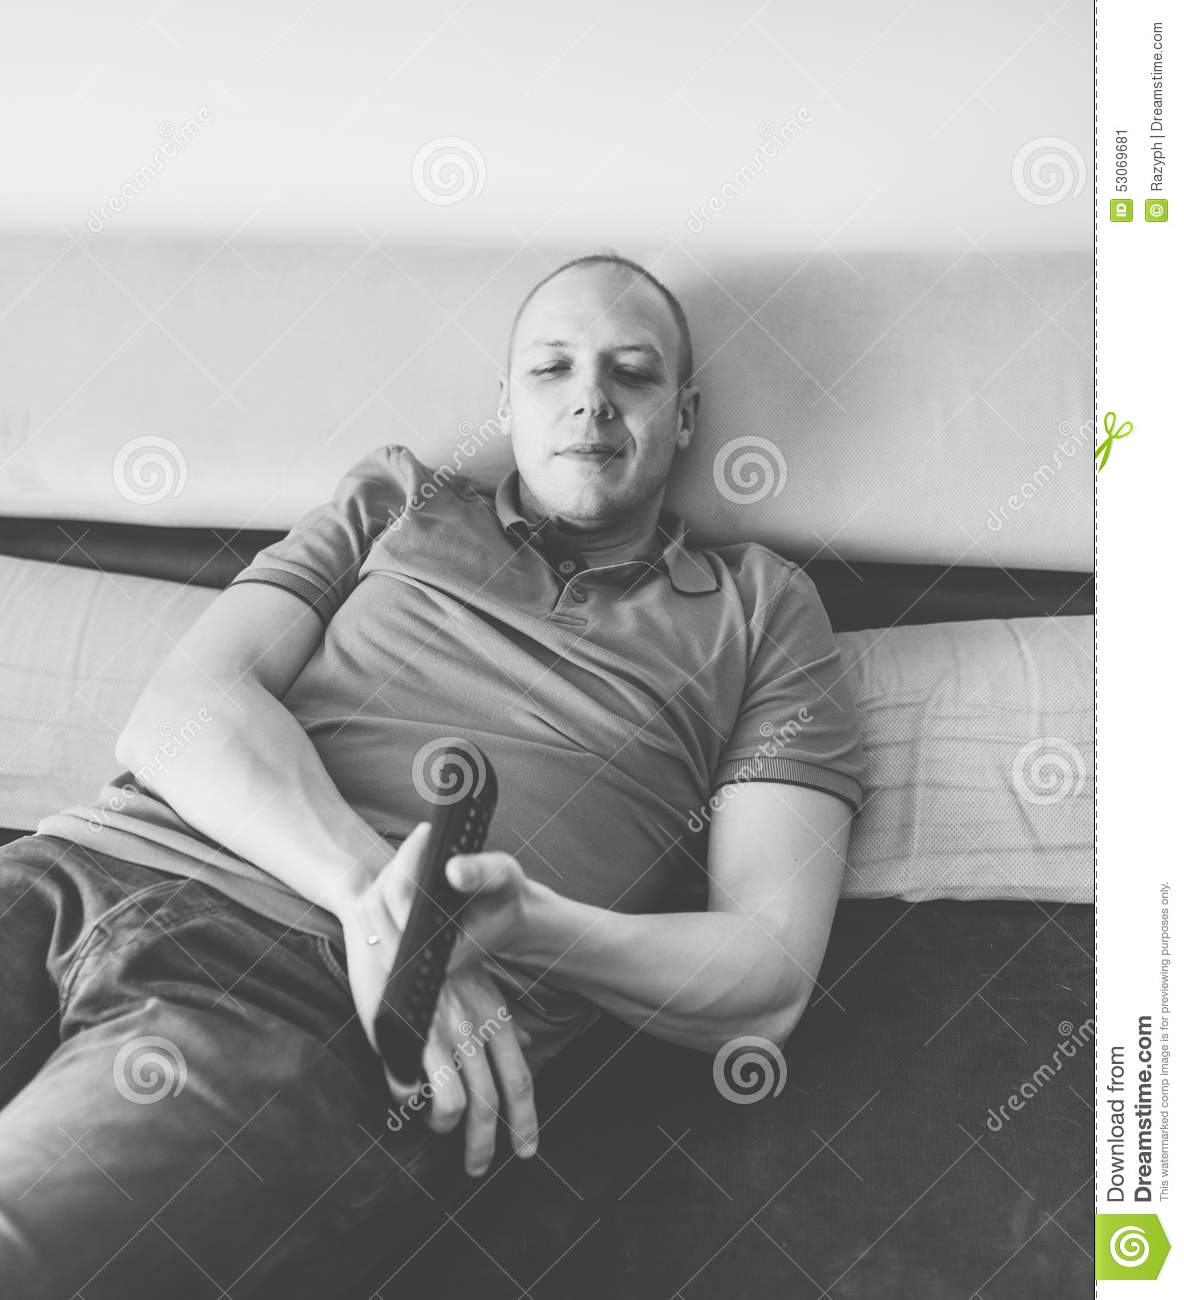 Relaxed Man Stock Photo - Image: 53069681